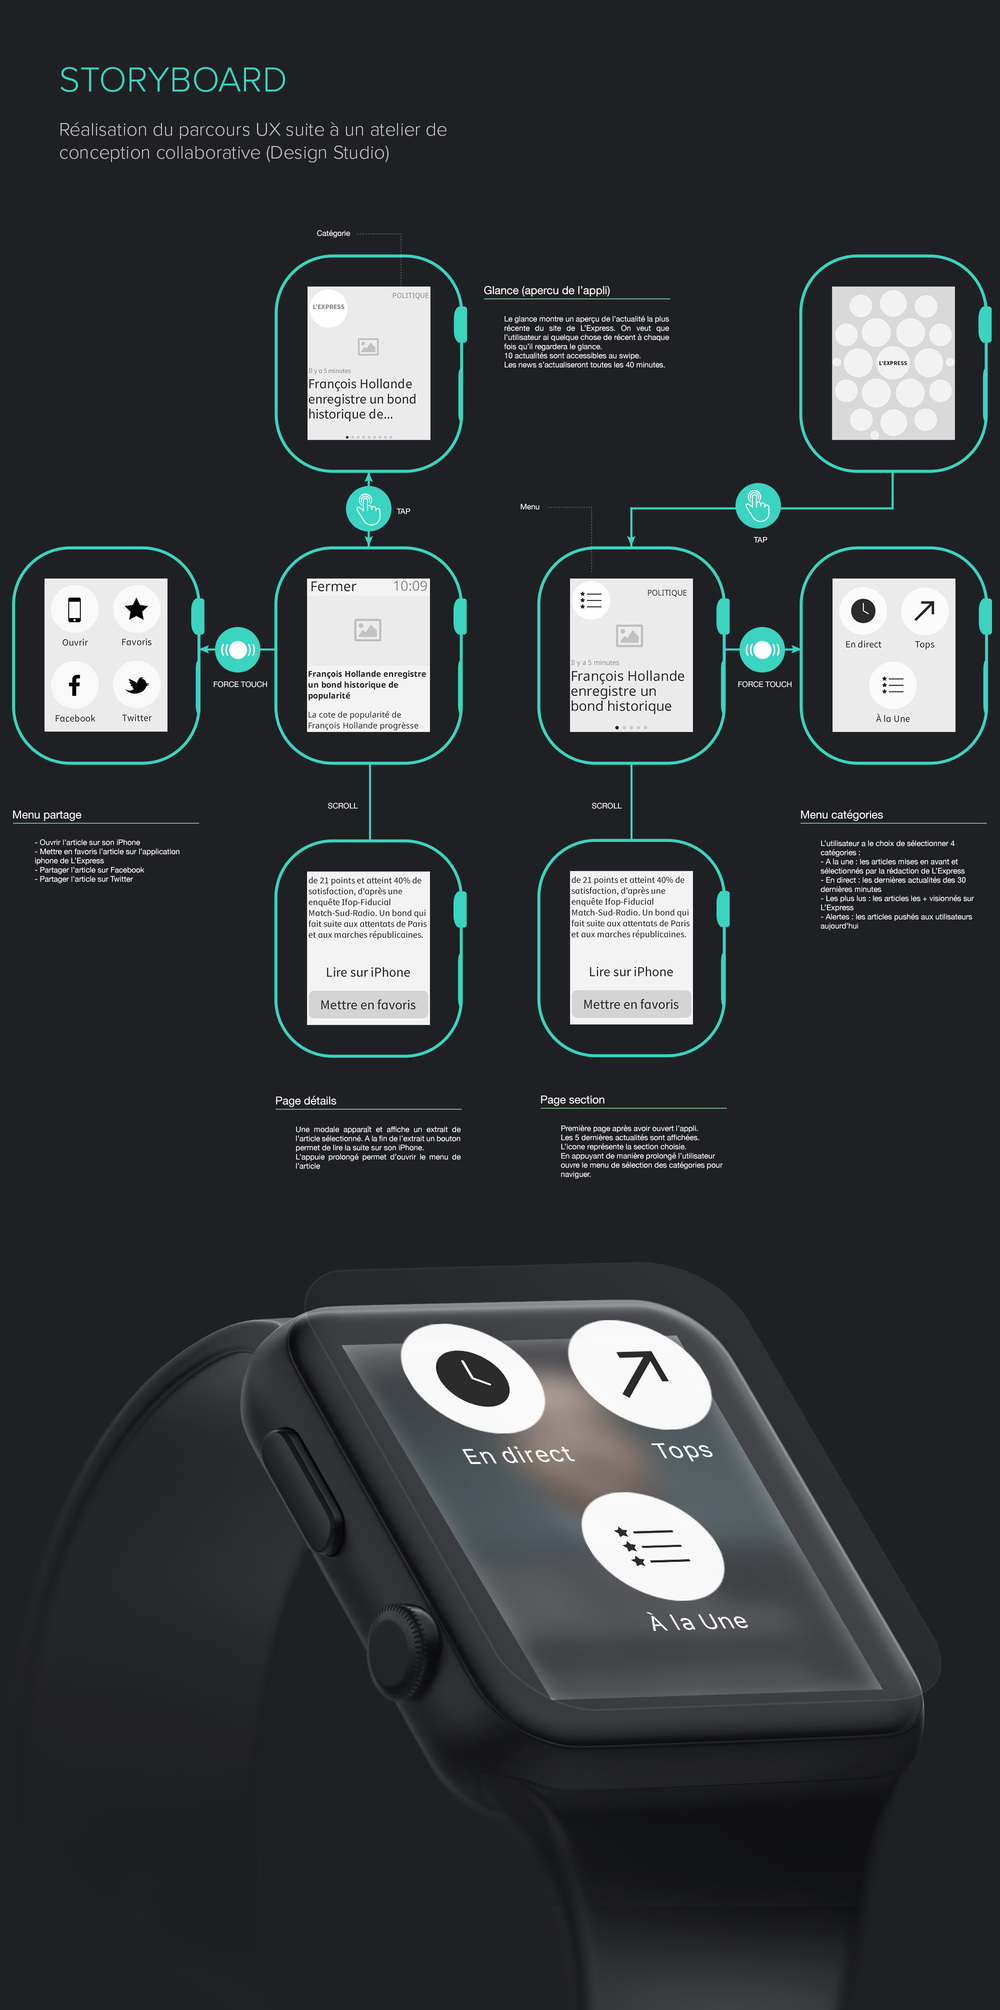 L'Express Apple Watch : storyboard et parcours UX